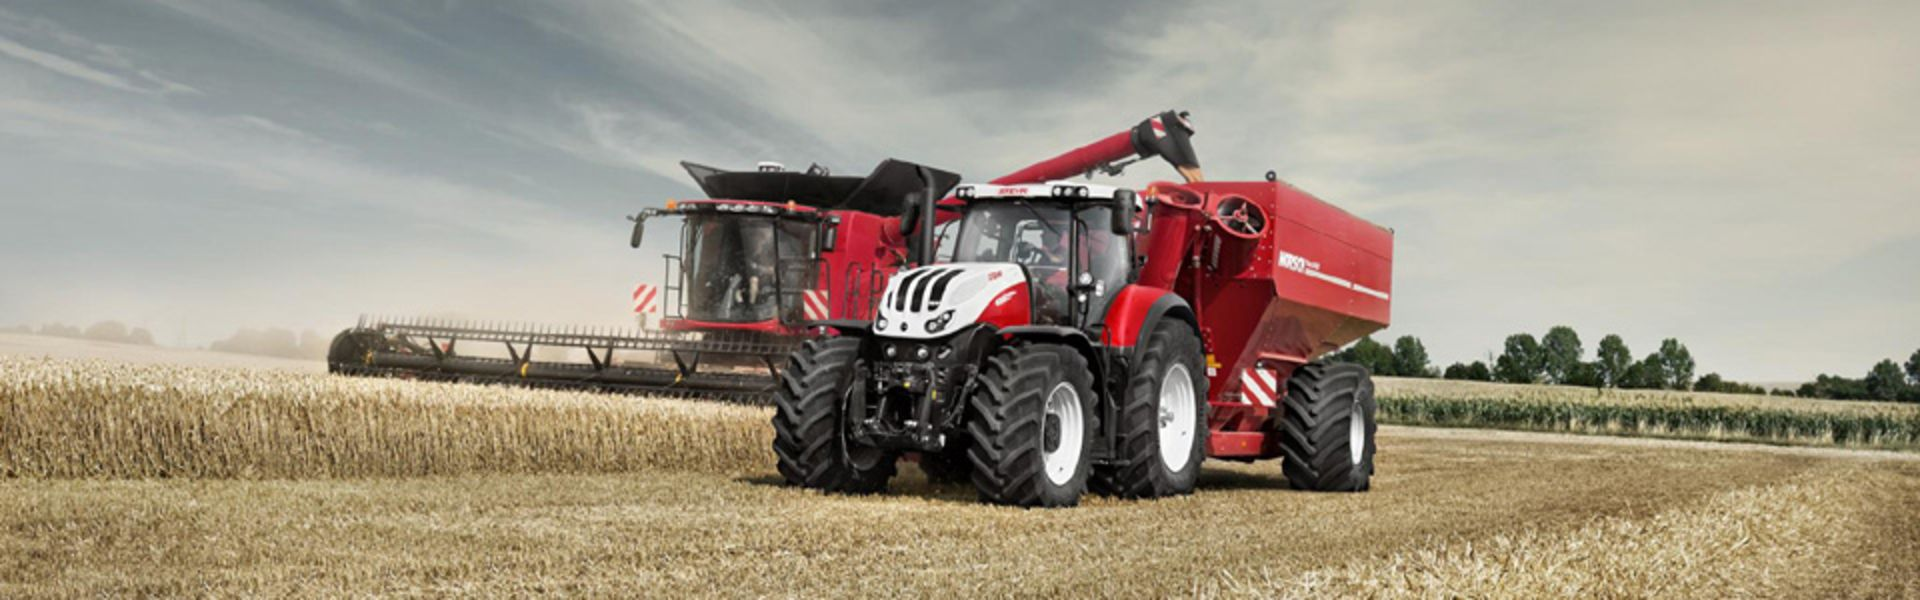 Unser Partner: Case IH